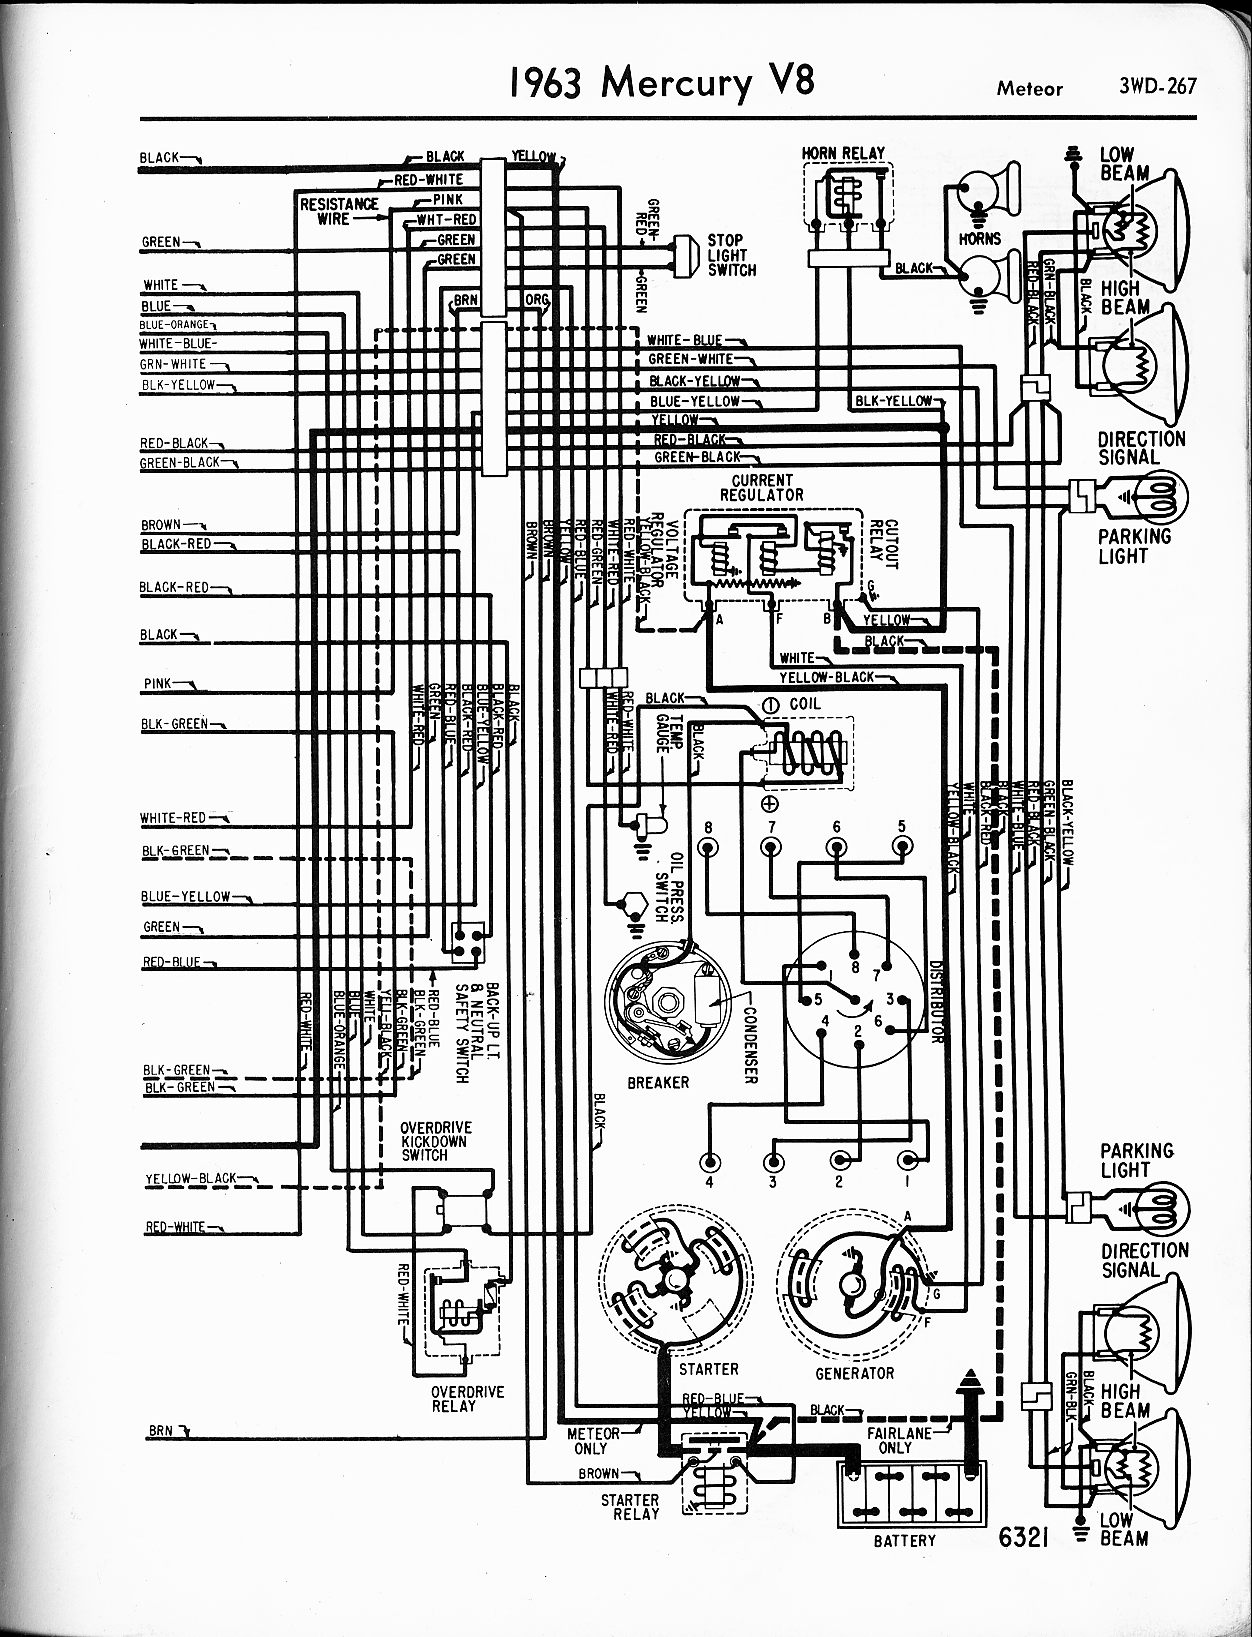 MWire5765 267 mercury wiring diagrams the old car manual project 1963 impala electrical diagram at soozxer.org